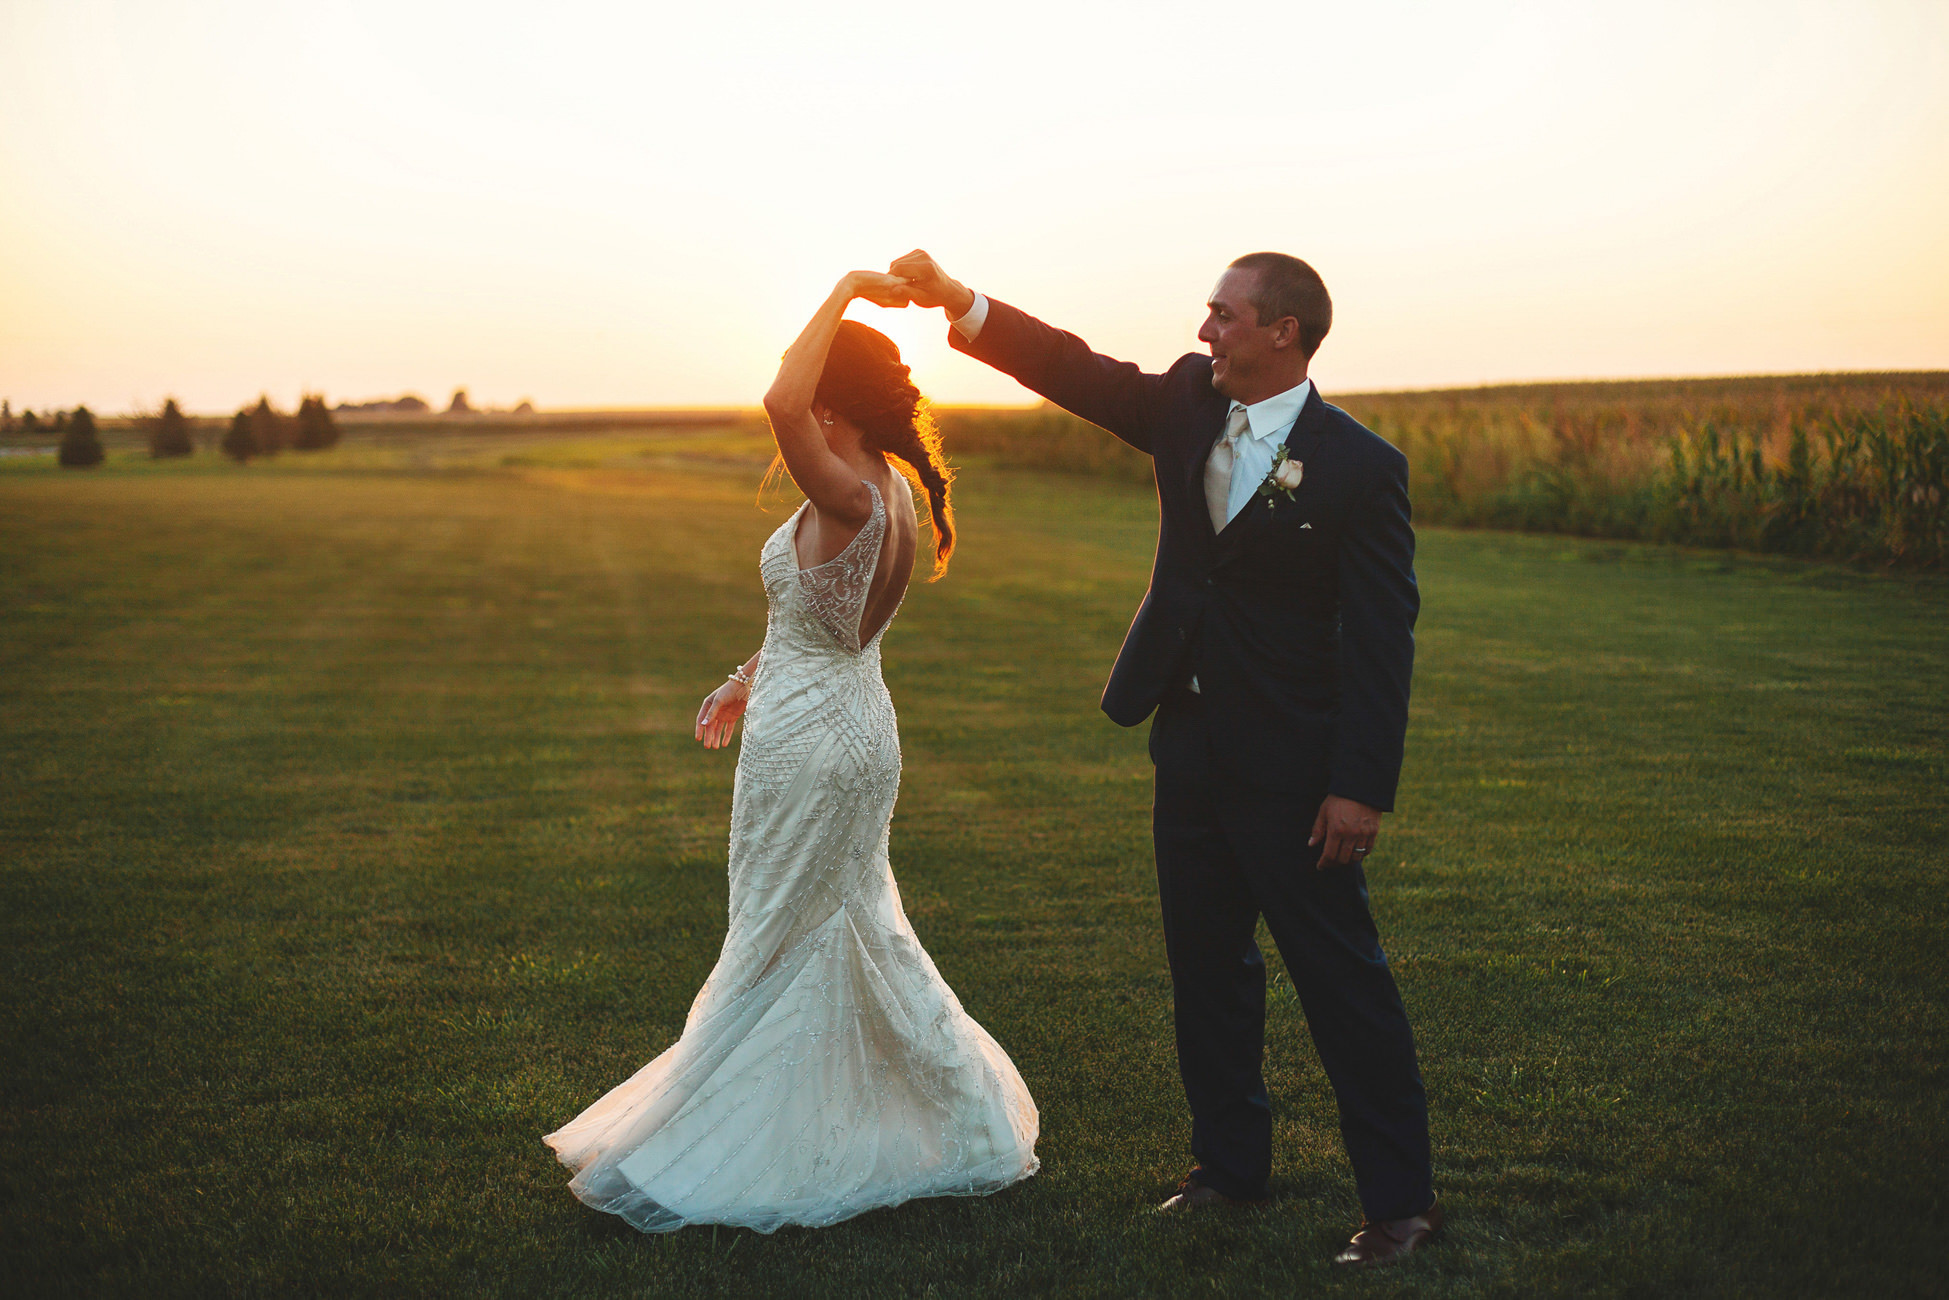 rachael_schirano_photography_wedding-23